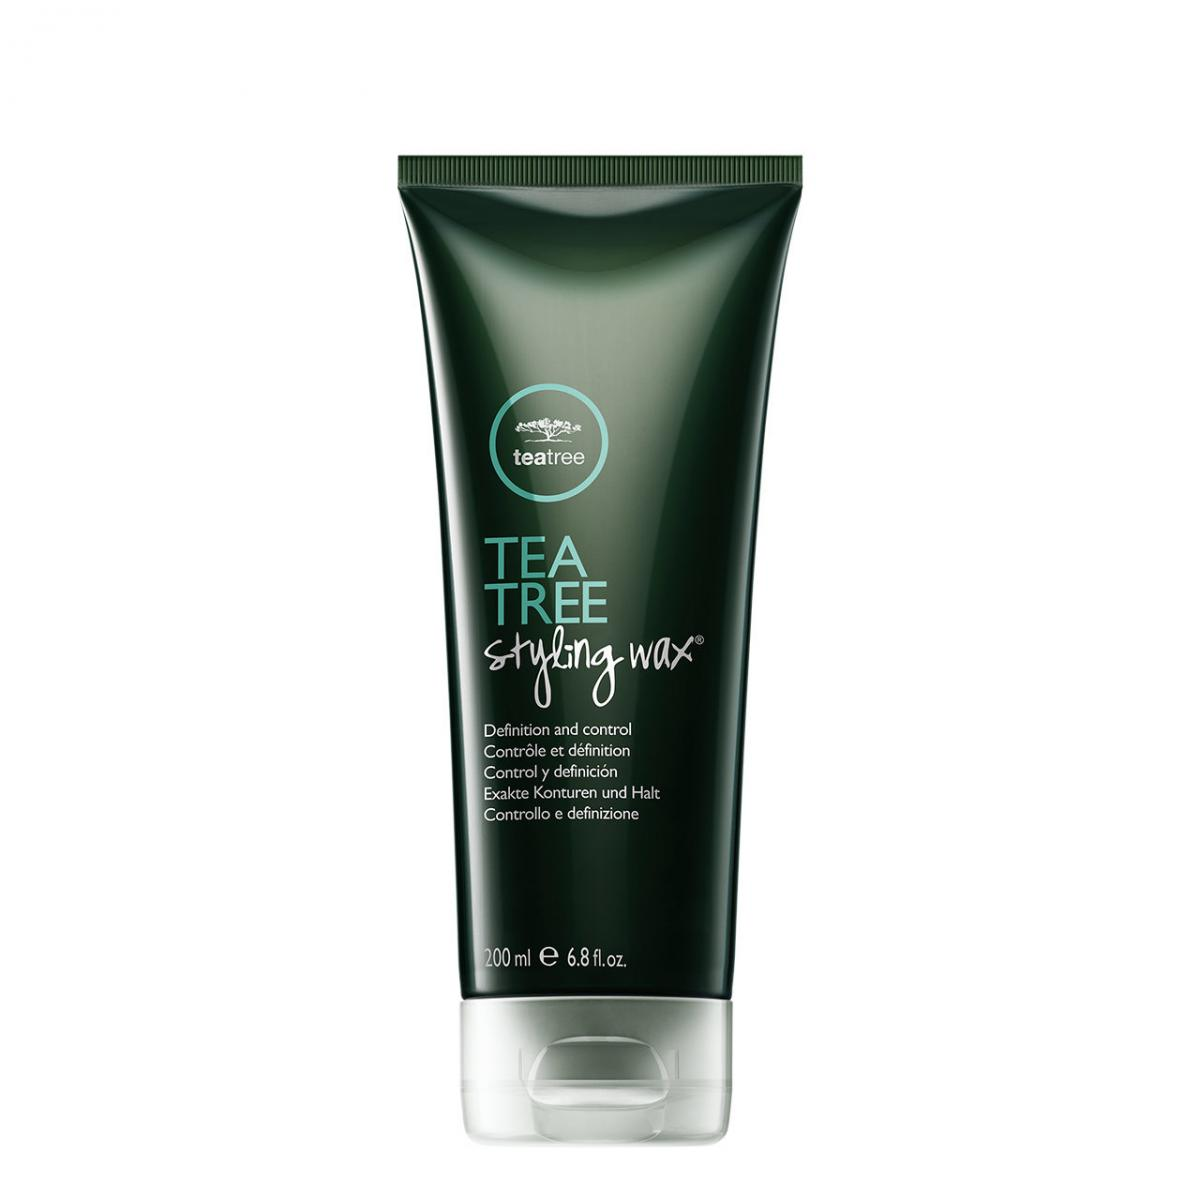 Paul Mitchell Tea Tree Styling Wax 200ml - Hairsale.se